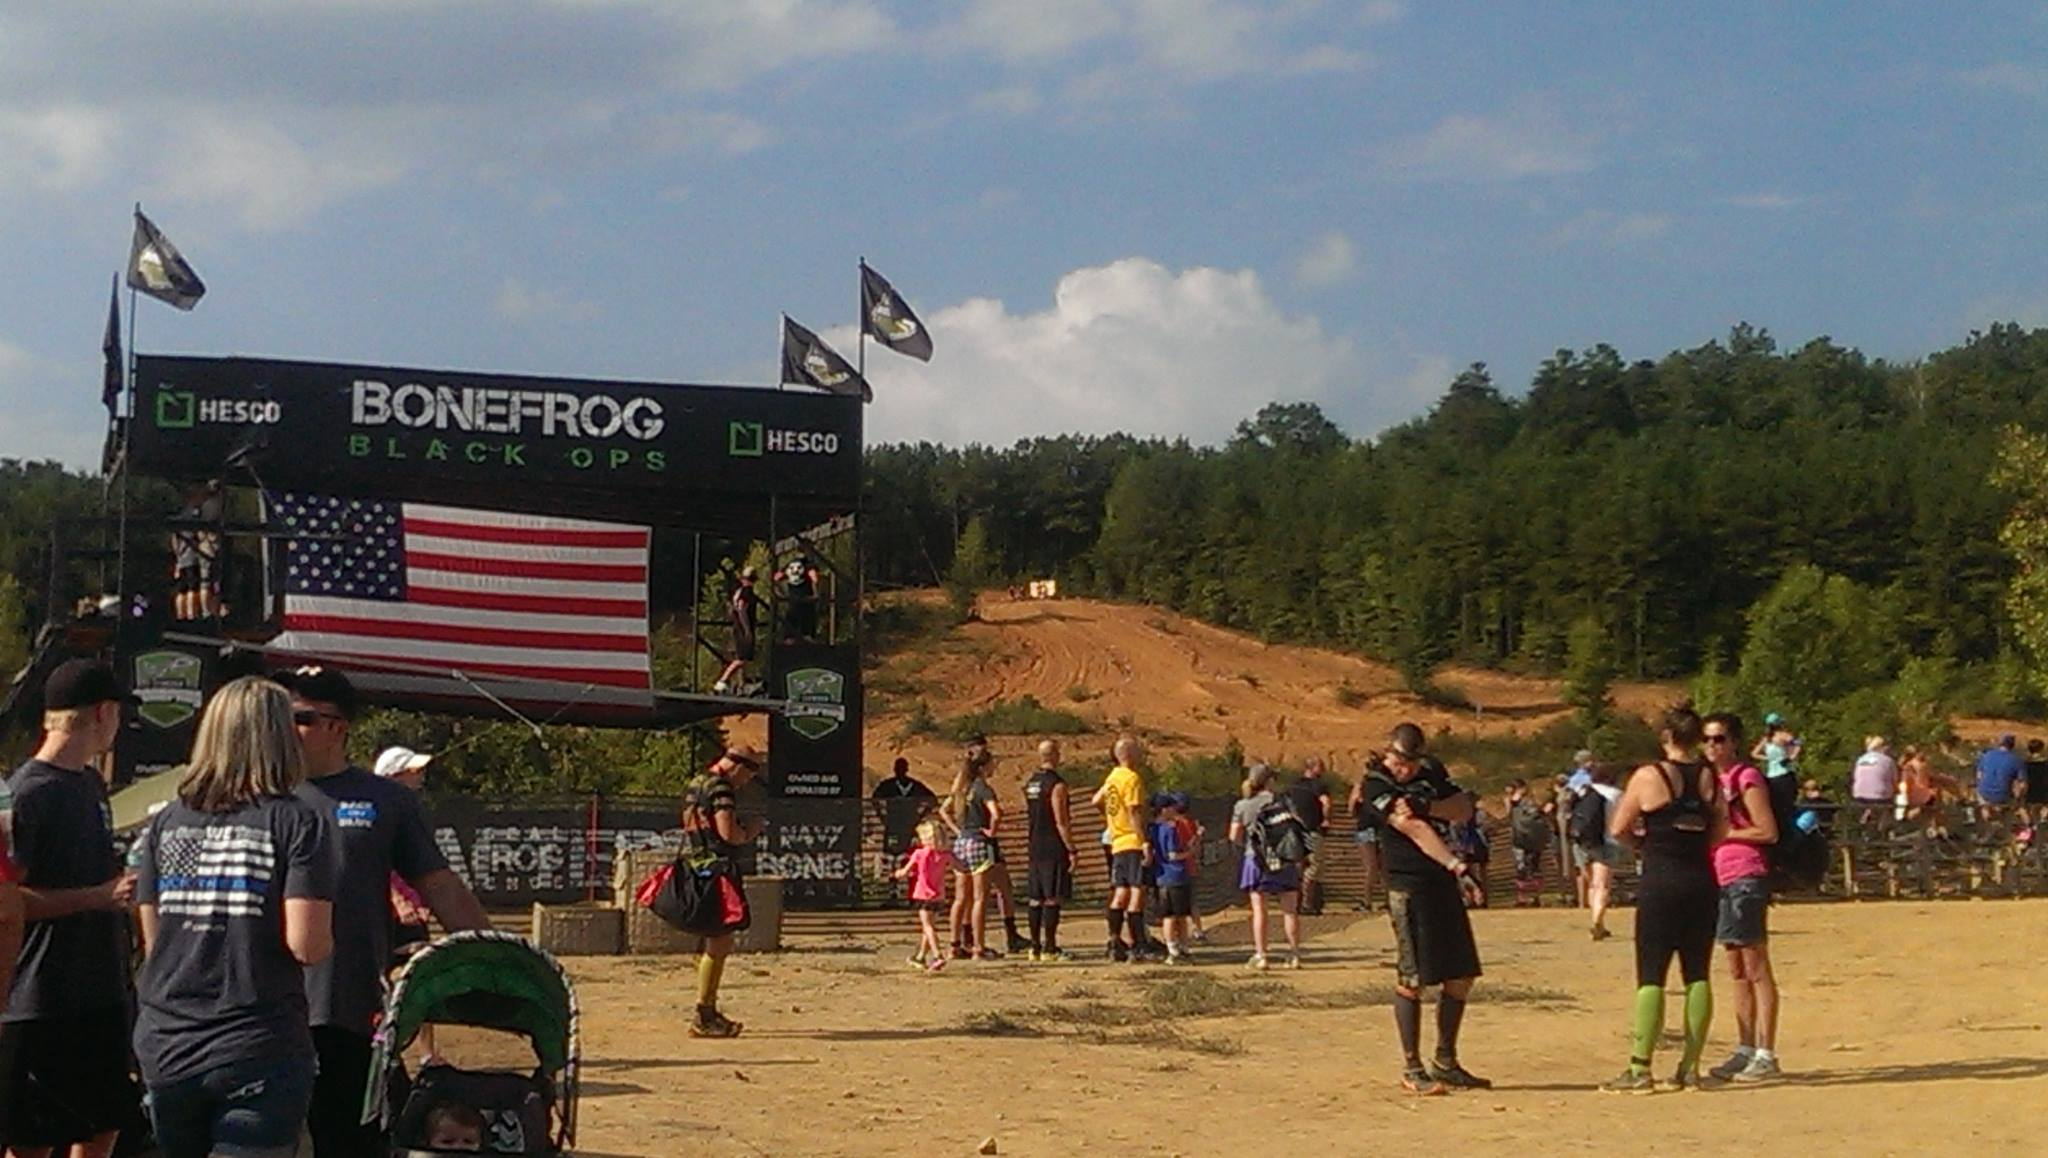 BoneFrog Atlanta Sprint Course